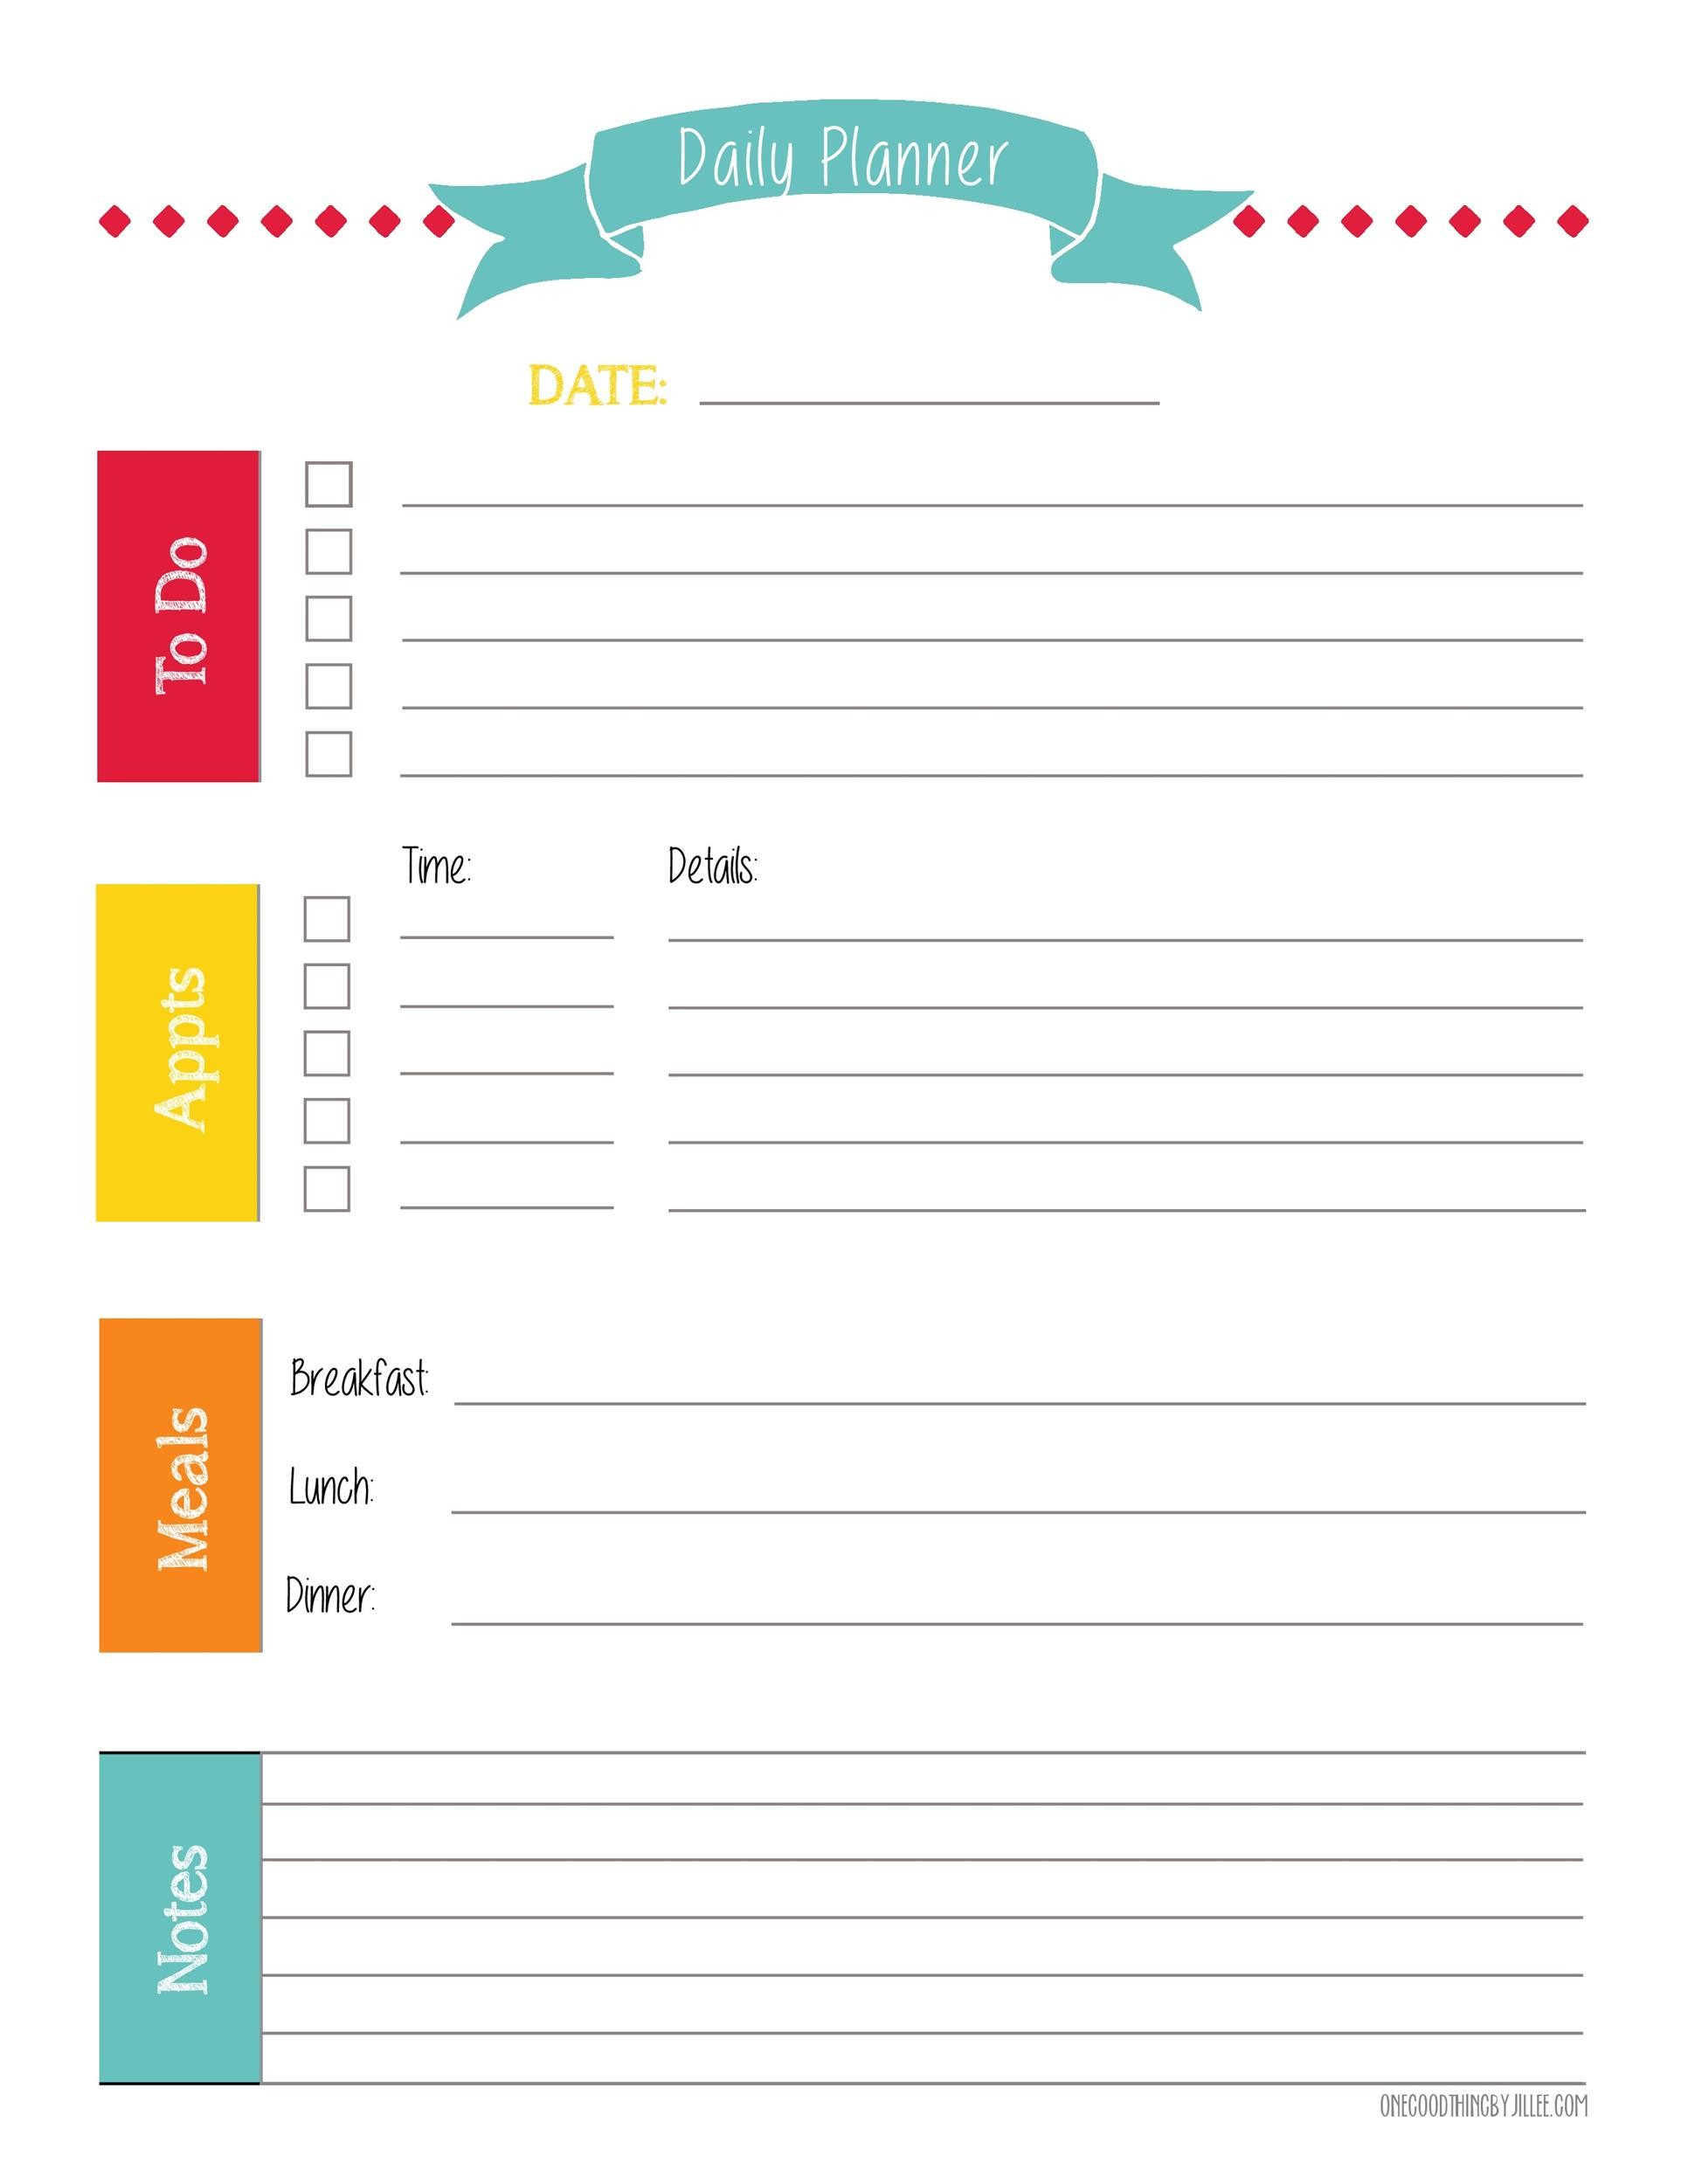 40 Printable Daily Planner Templates FREE Template Lab – Daily Planning Template